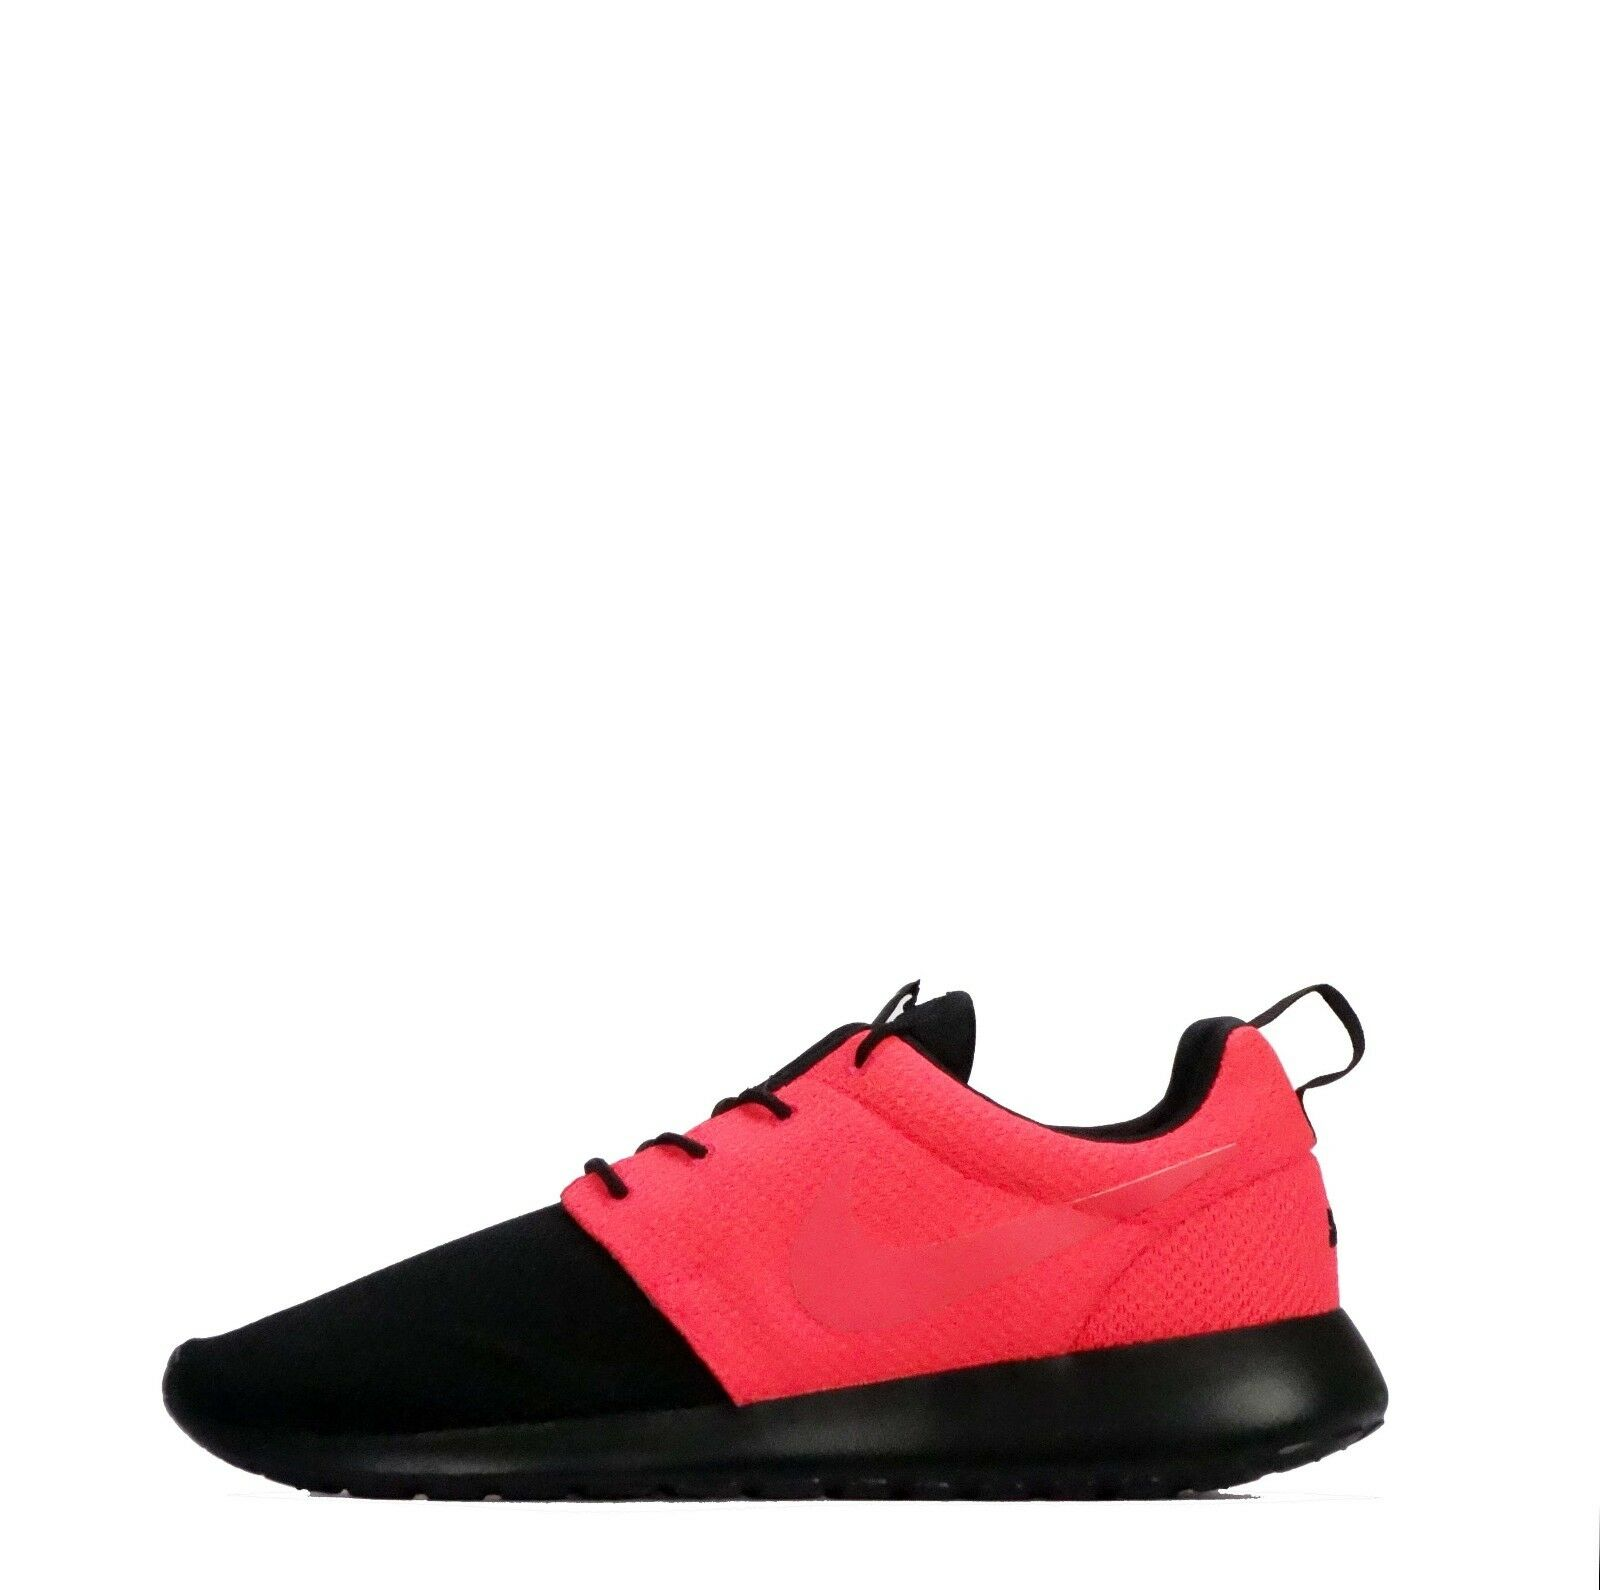 Nike ID Roshe One Men's Casual Trainers Shoes Black/Solar Red